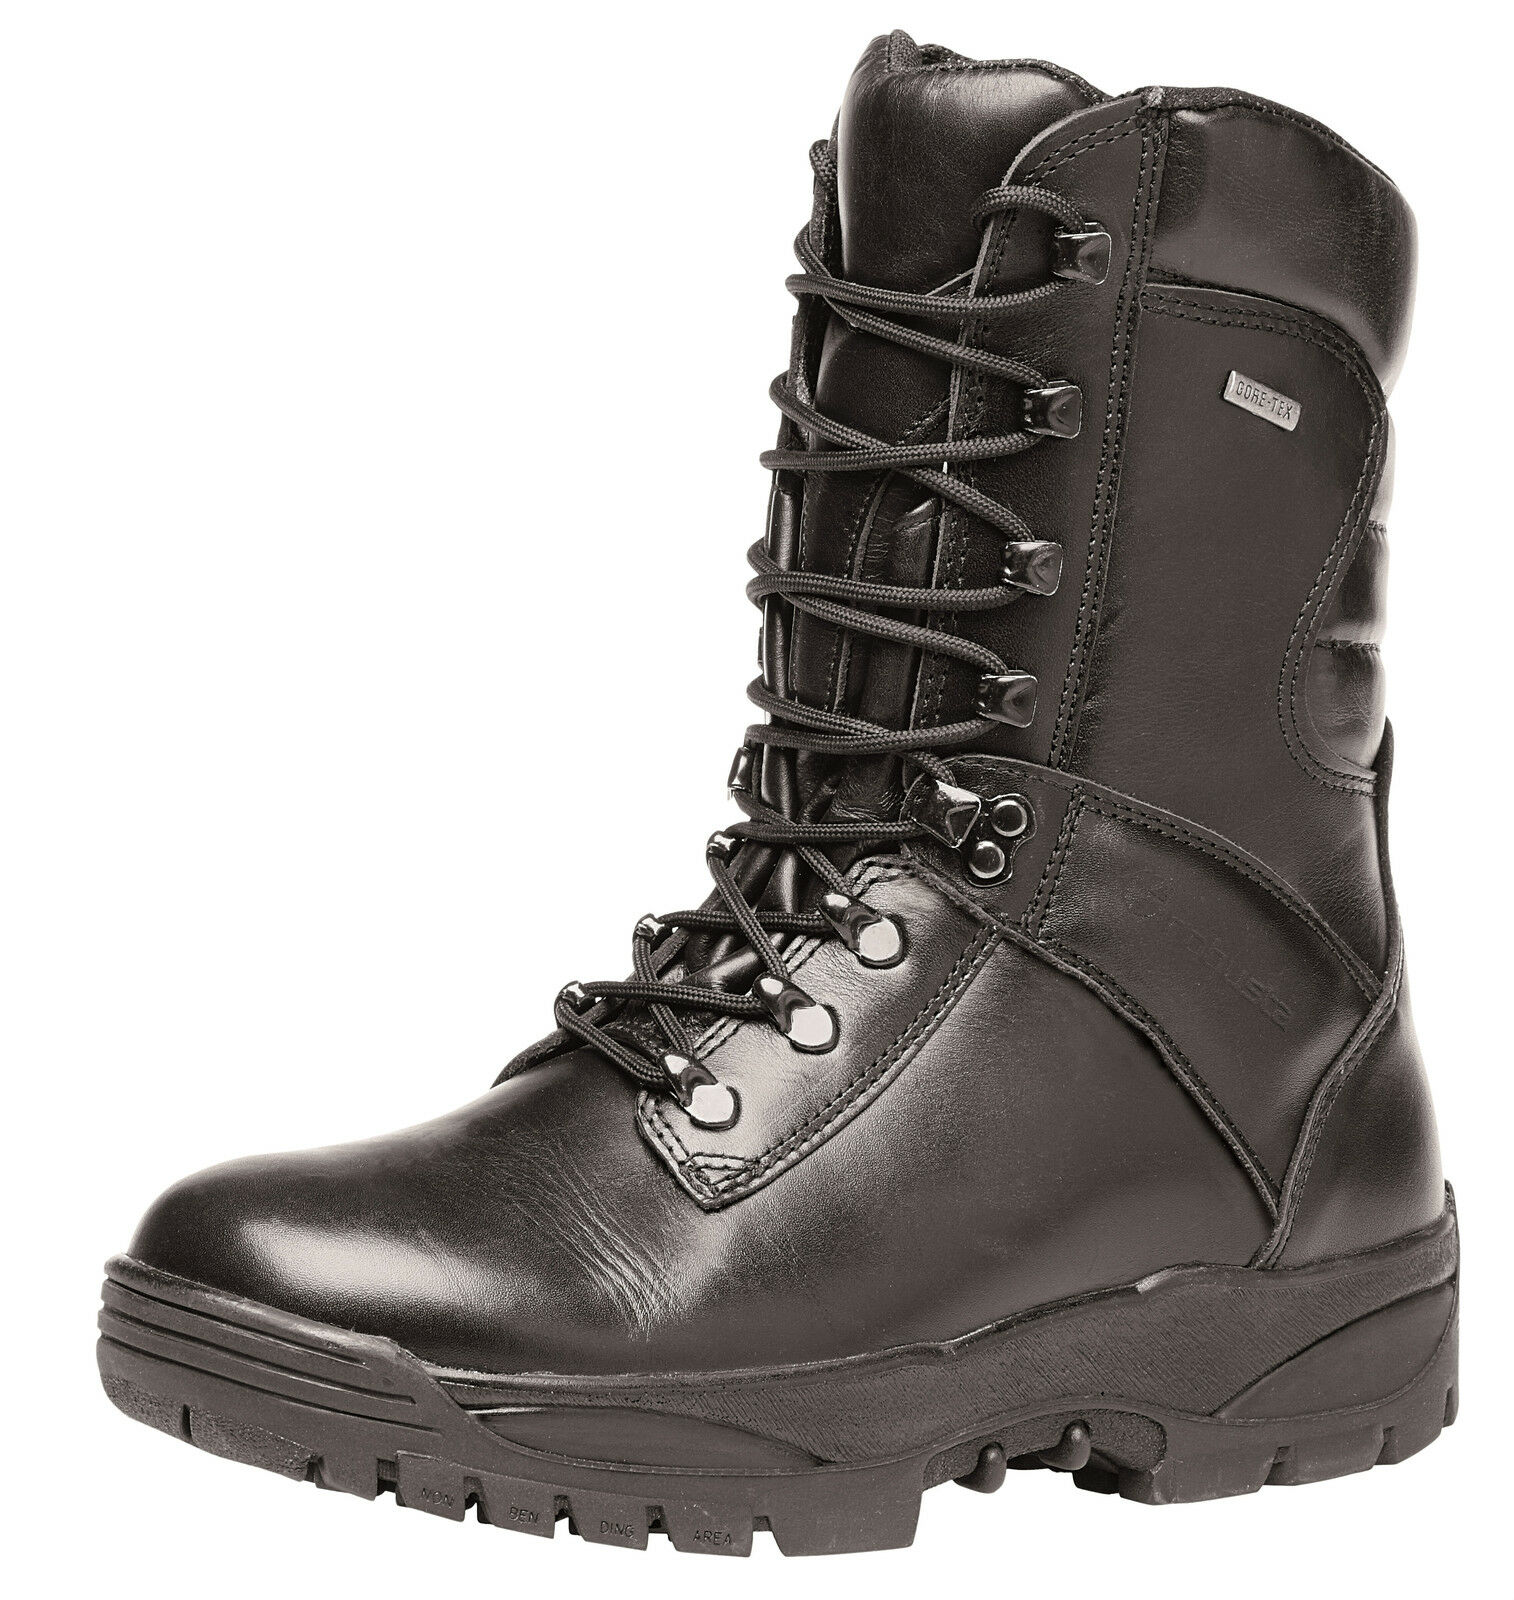 Robusta Tragreenino Gore-Tex Boot WATERPROOF military cadet police security boots